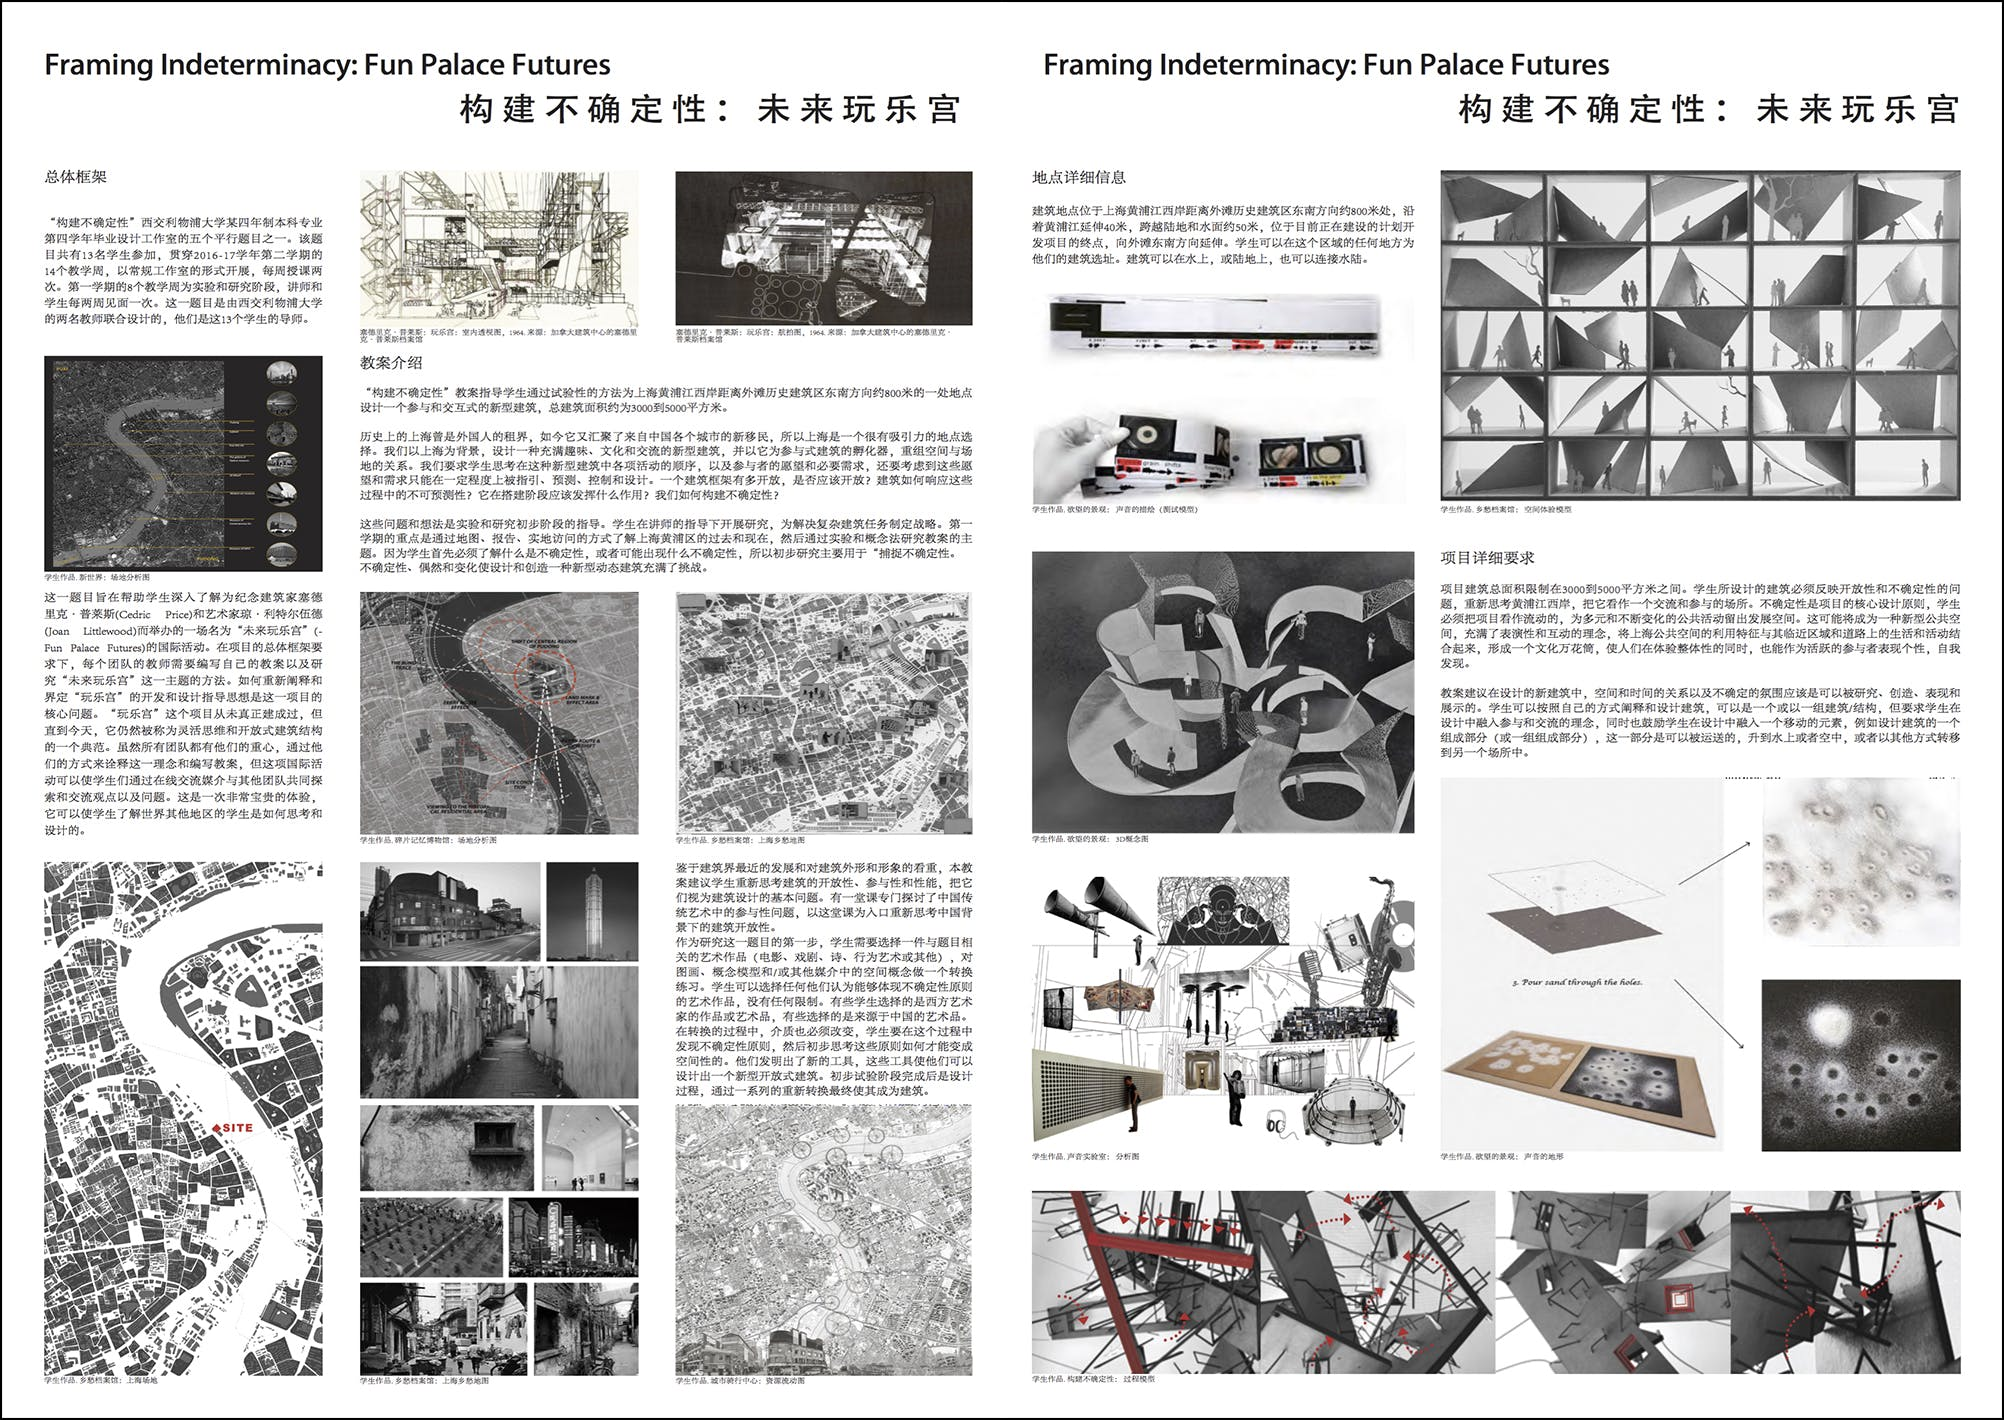 """Framing Indeterminacy"" brief boards showing related studio work by: Chen Yukun, Ding Xiao, Jiang Hao, Li Jiaxu, Shen Xiaoya, Wu Hao, Yang Shihao, Zhang Chenke, Zheng Xin, Zhu Runzi."